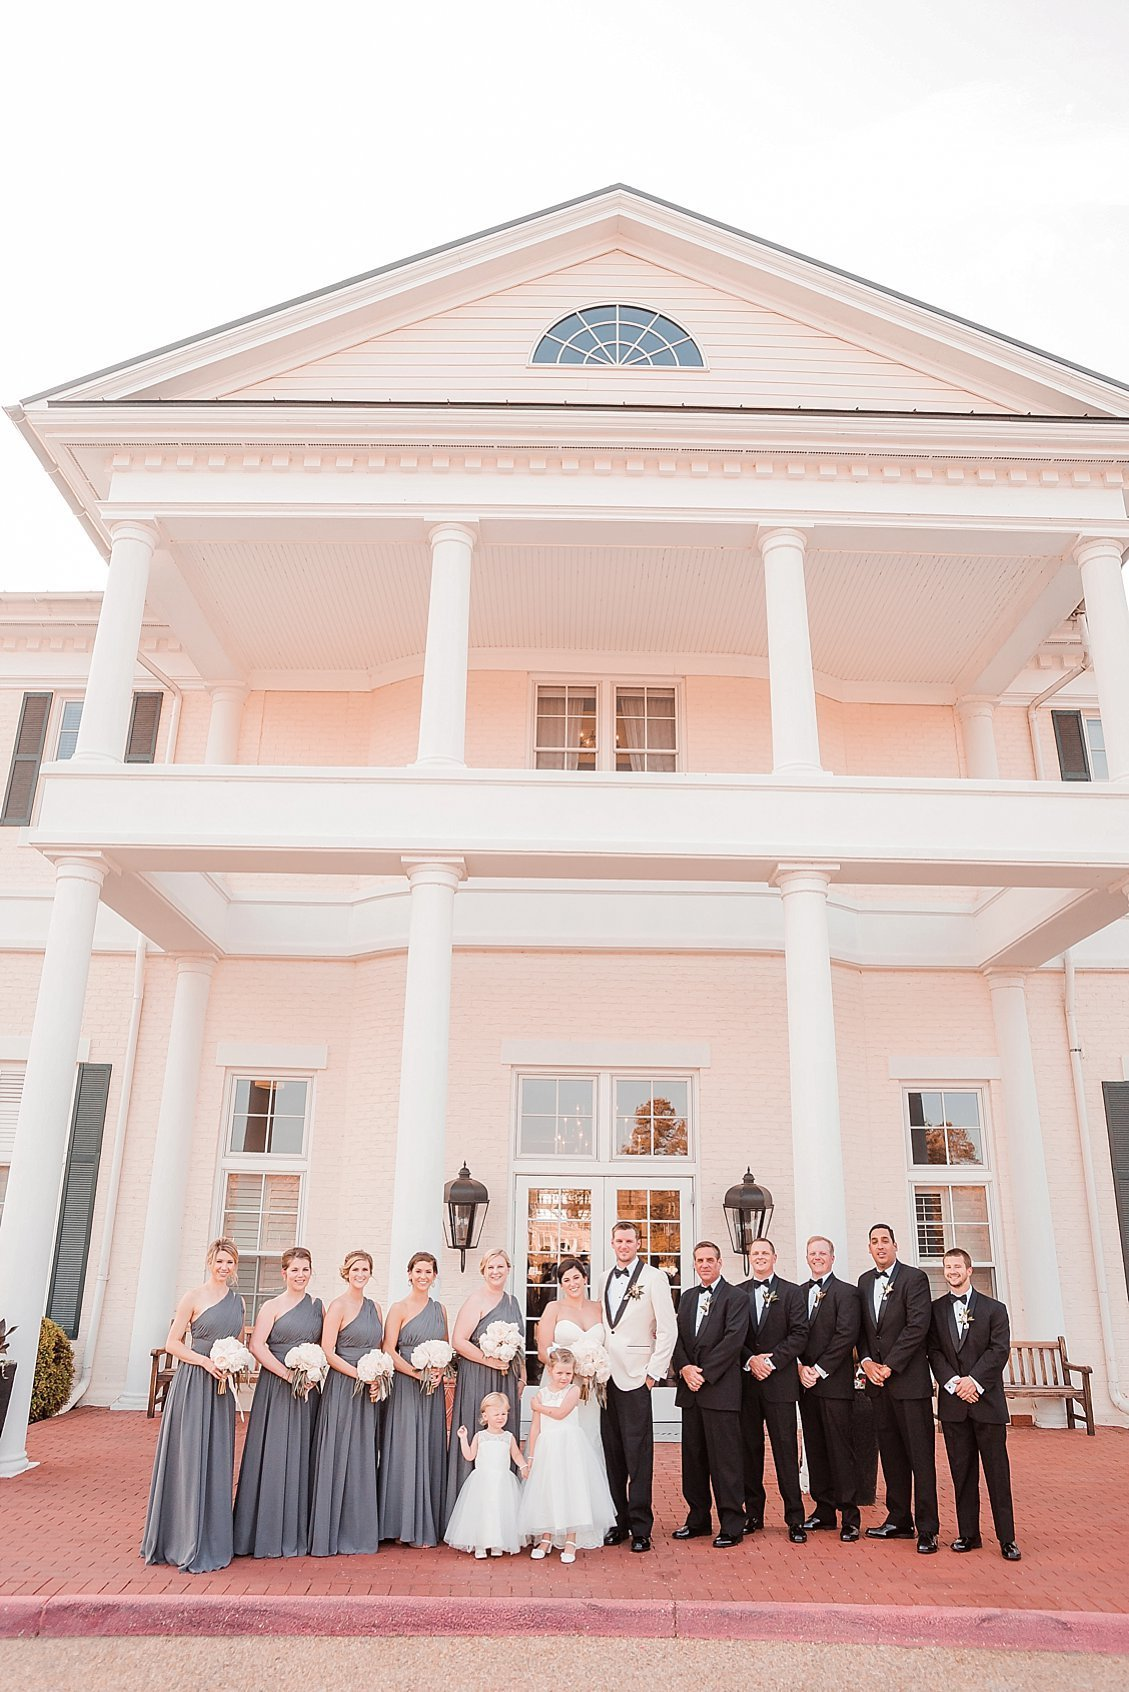 sharonelizabethphotography-independencegolfclubwedding-richmondvirginiawedding-classicgolfcoursewedding4066